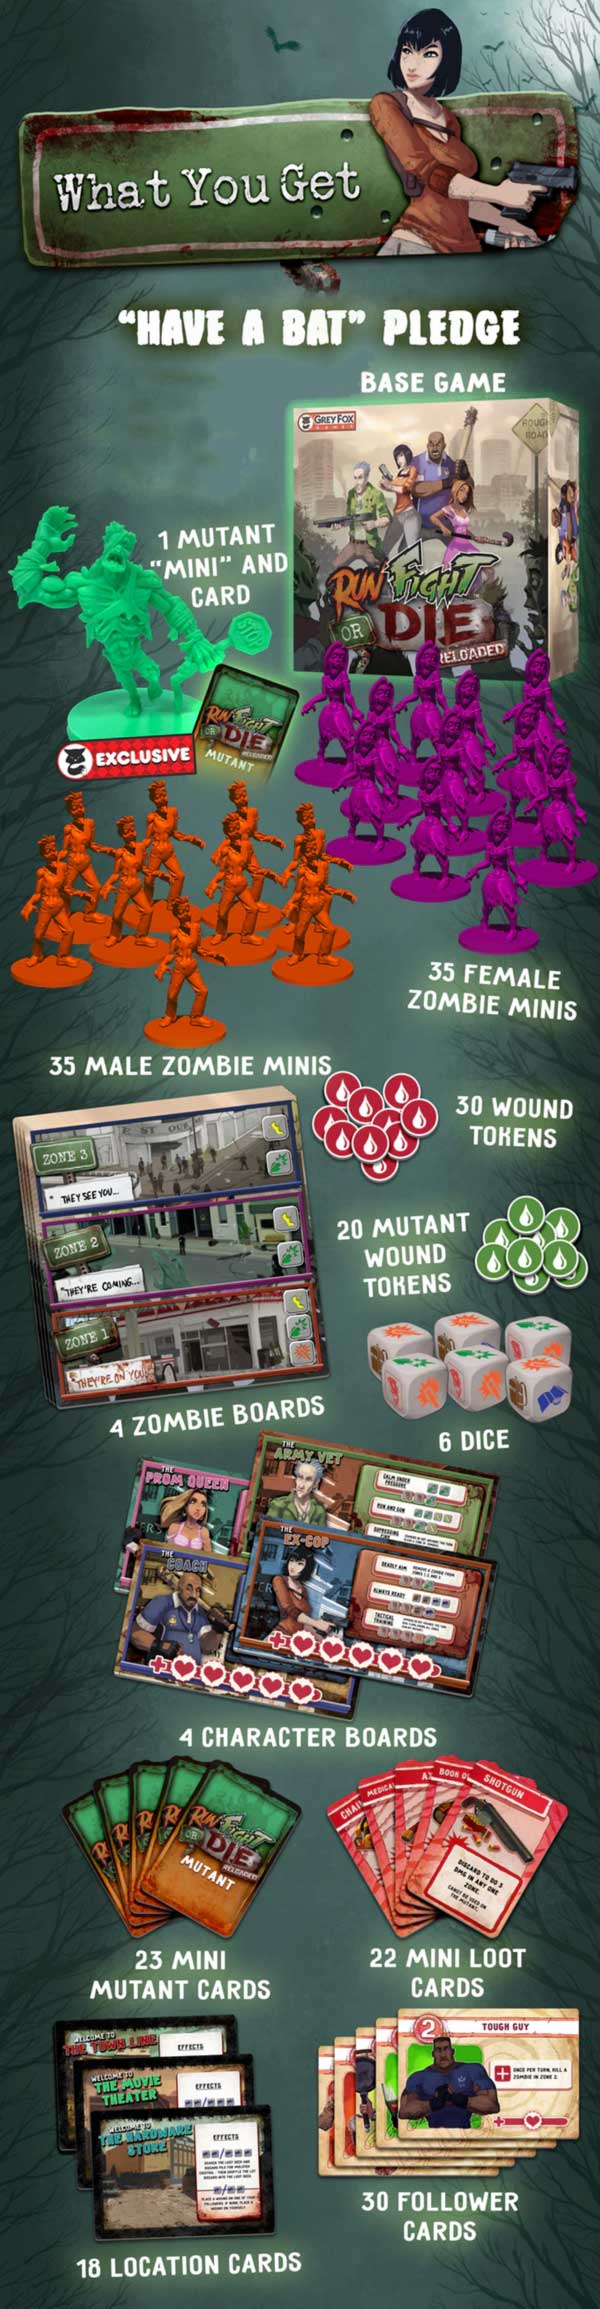 Run Fight or Die Reloaded Kickstarter The Game Steward thegamesteward